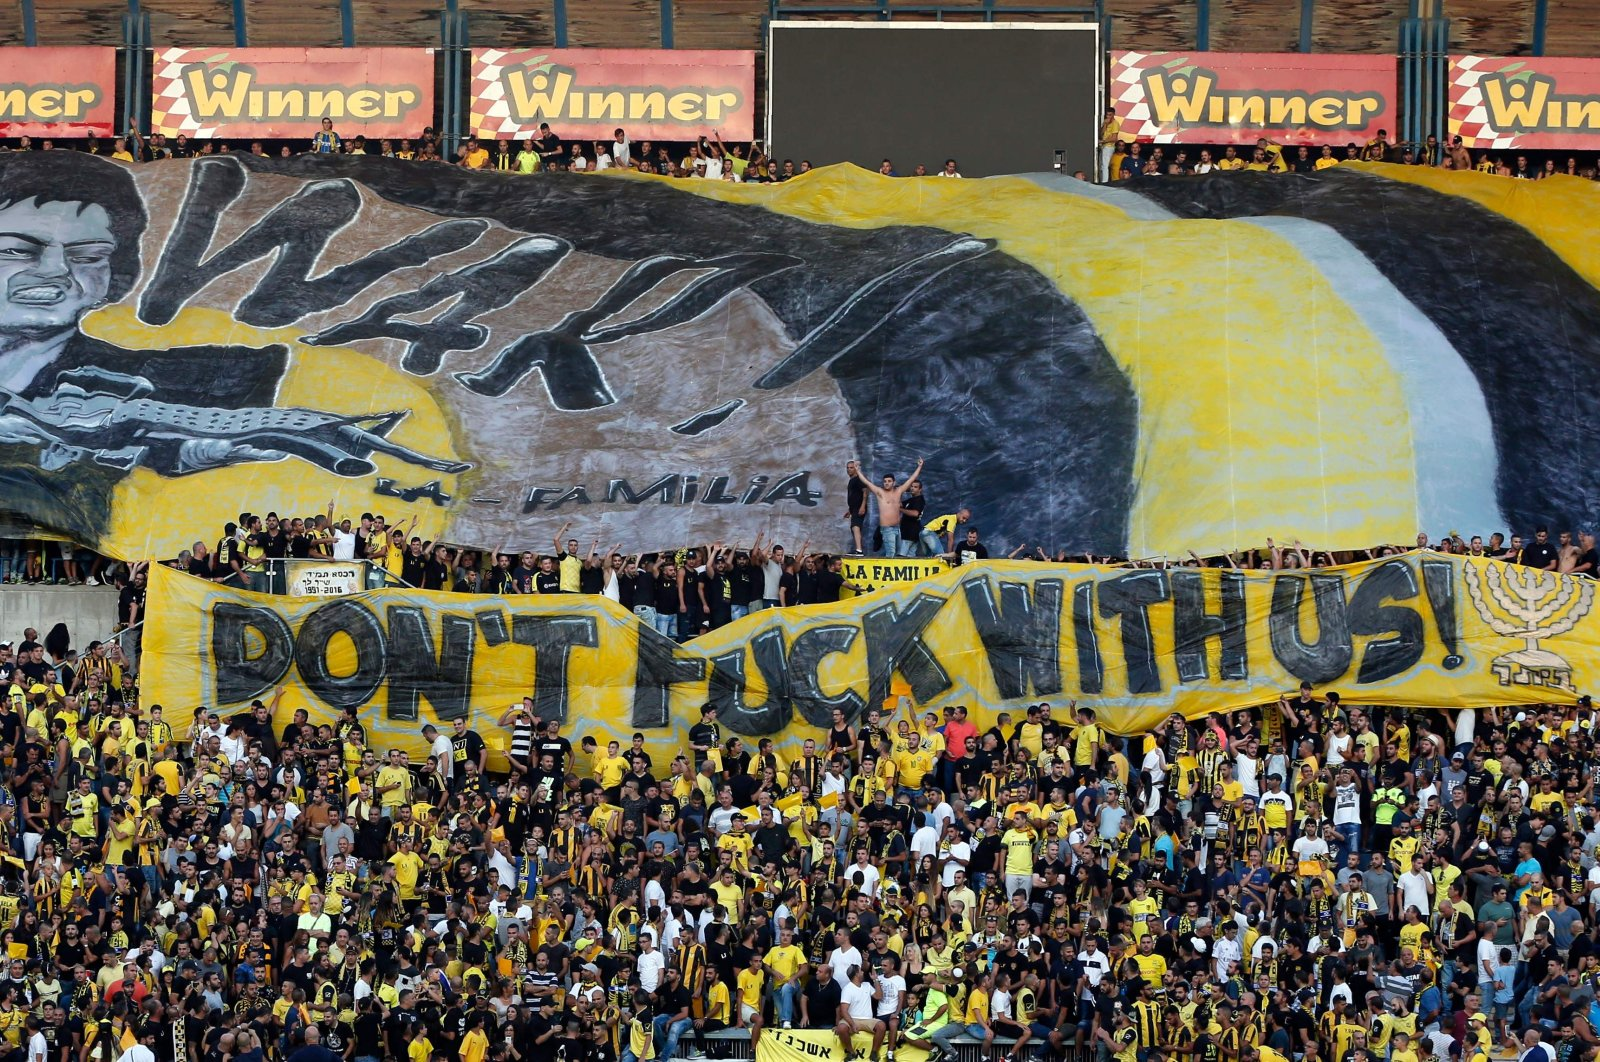 Beitar Jerusalem fans hold up banners prior to the UEFA Europa League play-off football match between Beitar Jerusalem and AS Saint-Etienne, at the Itztadion Teddy Stadium in Jerusalem, Aug. 17, 2016. (AFP Photo)